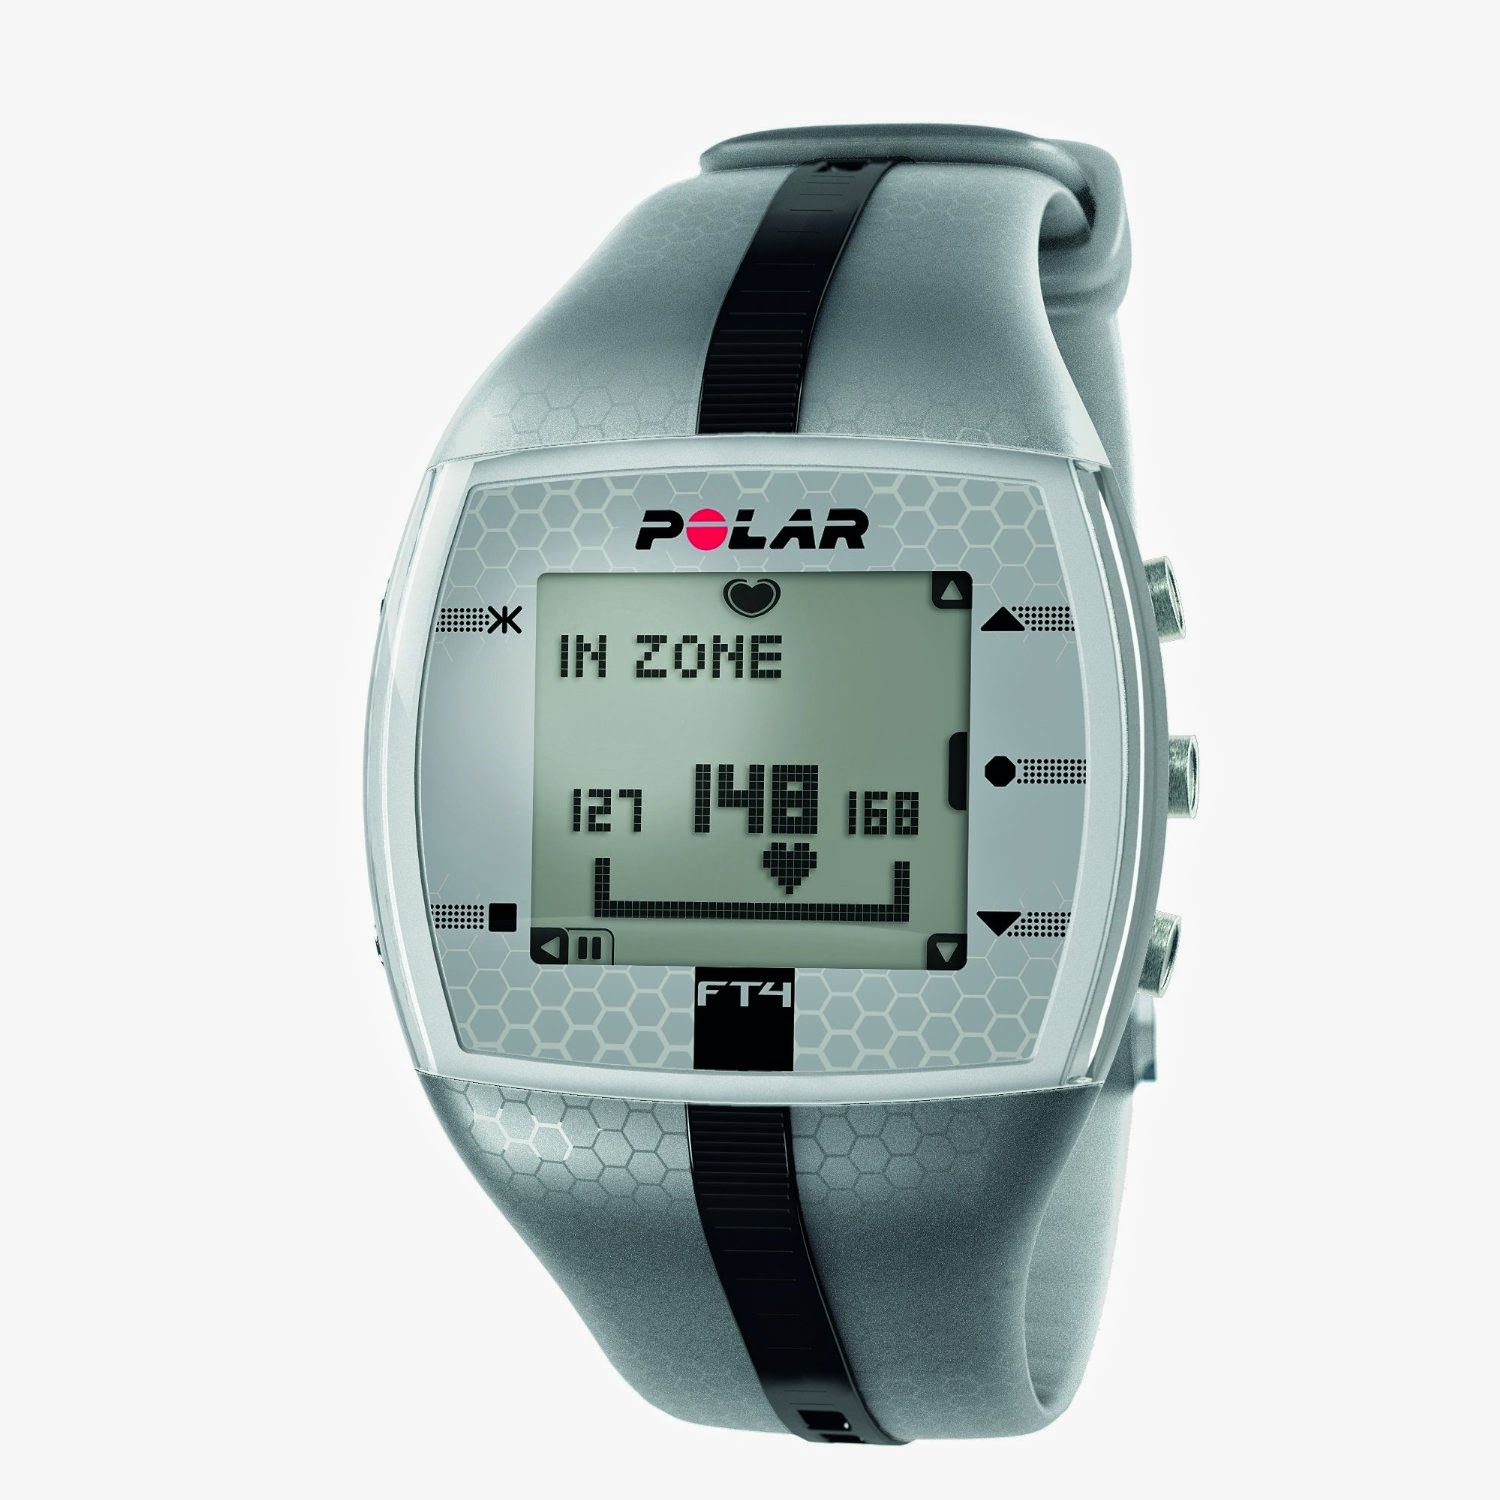 polar heart rate monitor, fitness tools, heart rate monitor, polar